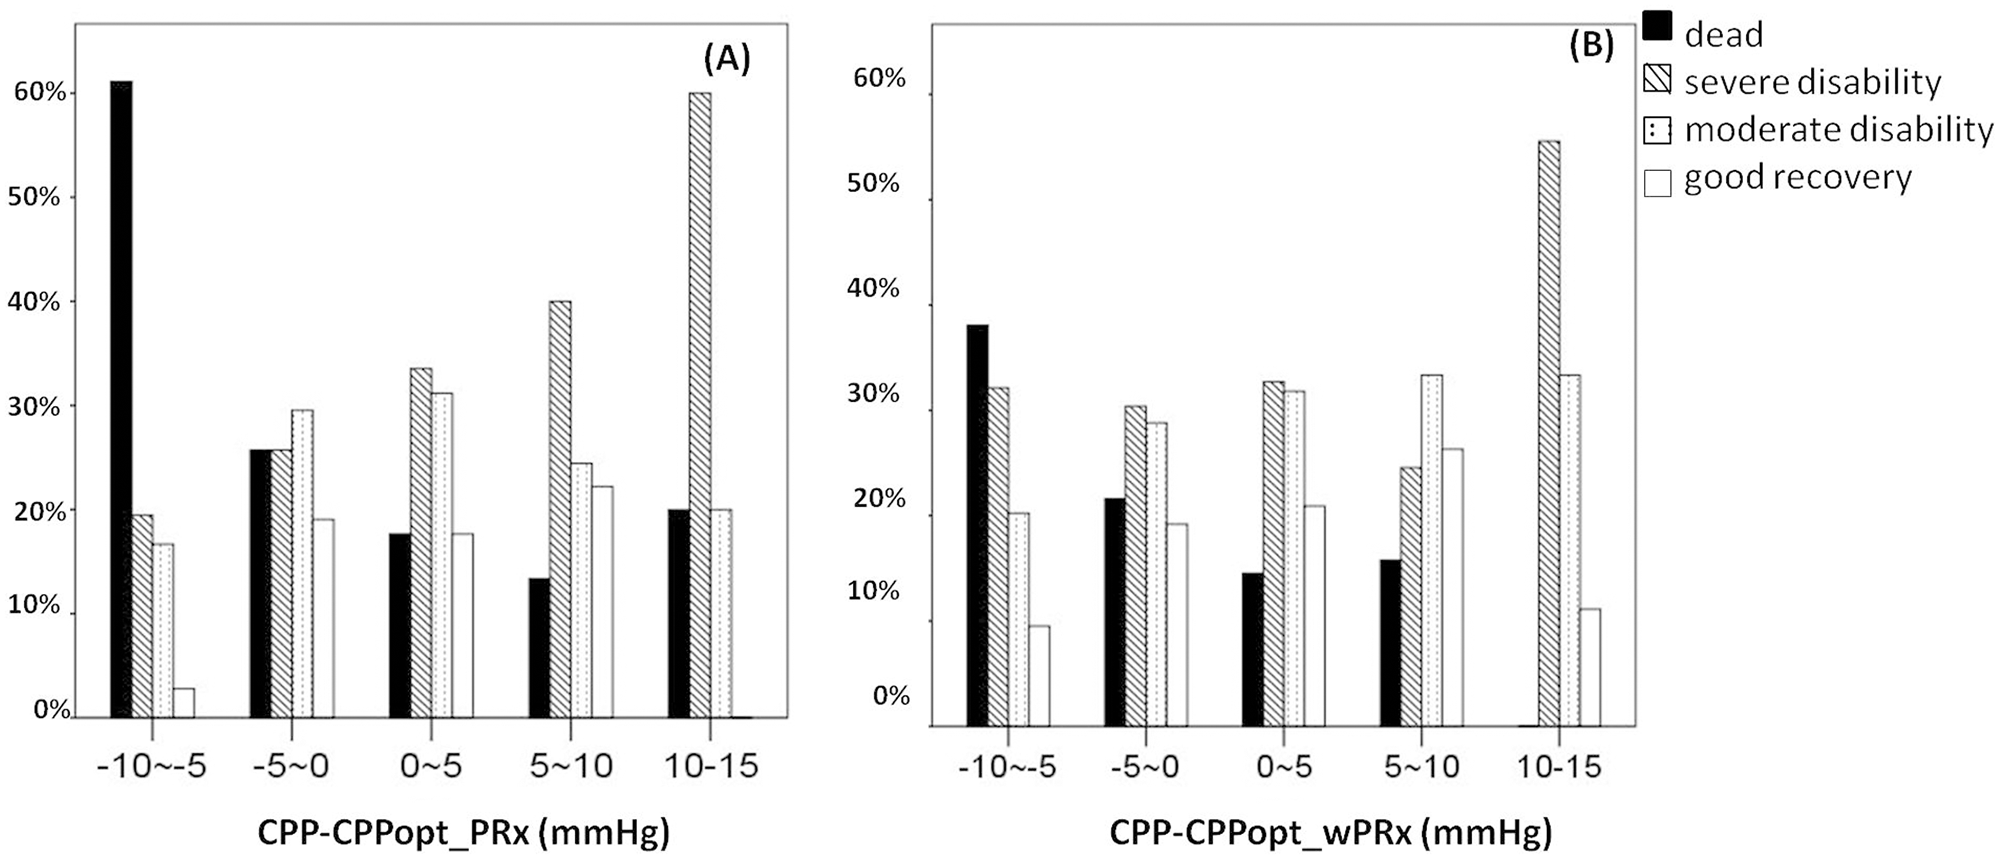 Distribution of Glasgow Outcome Scale (GOS) Score (%) versus the binned difference between the median cerebral perfusion pressure (CPP) and optimal CPP (CPPopt).